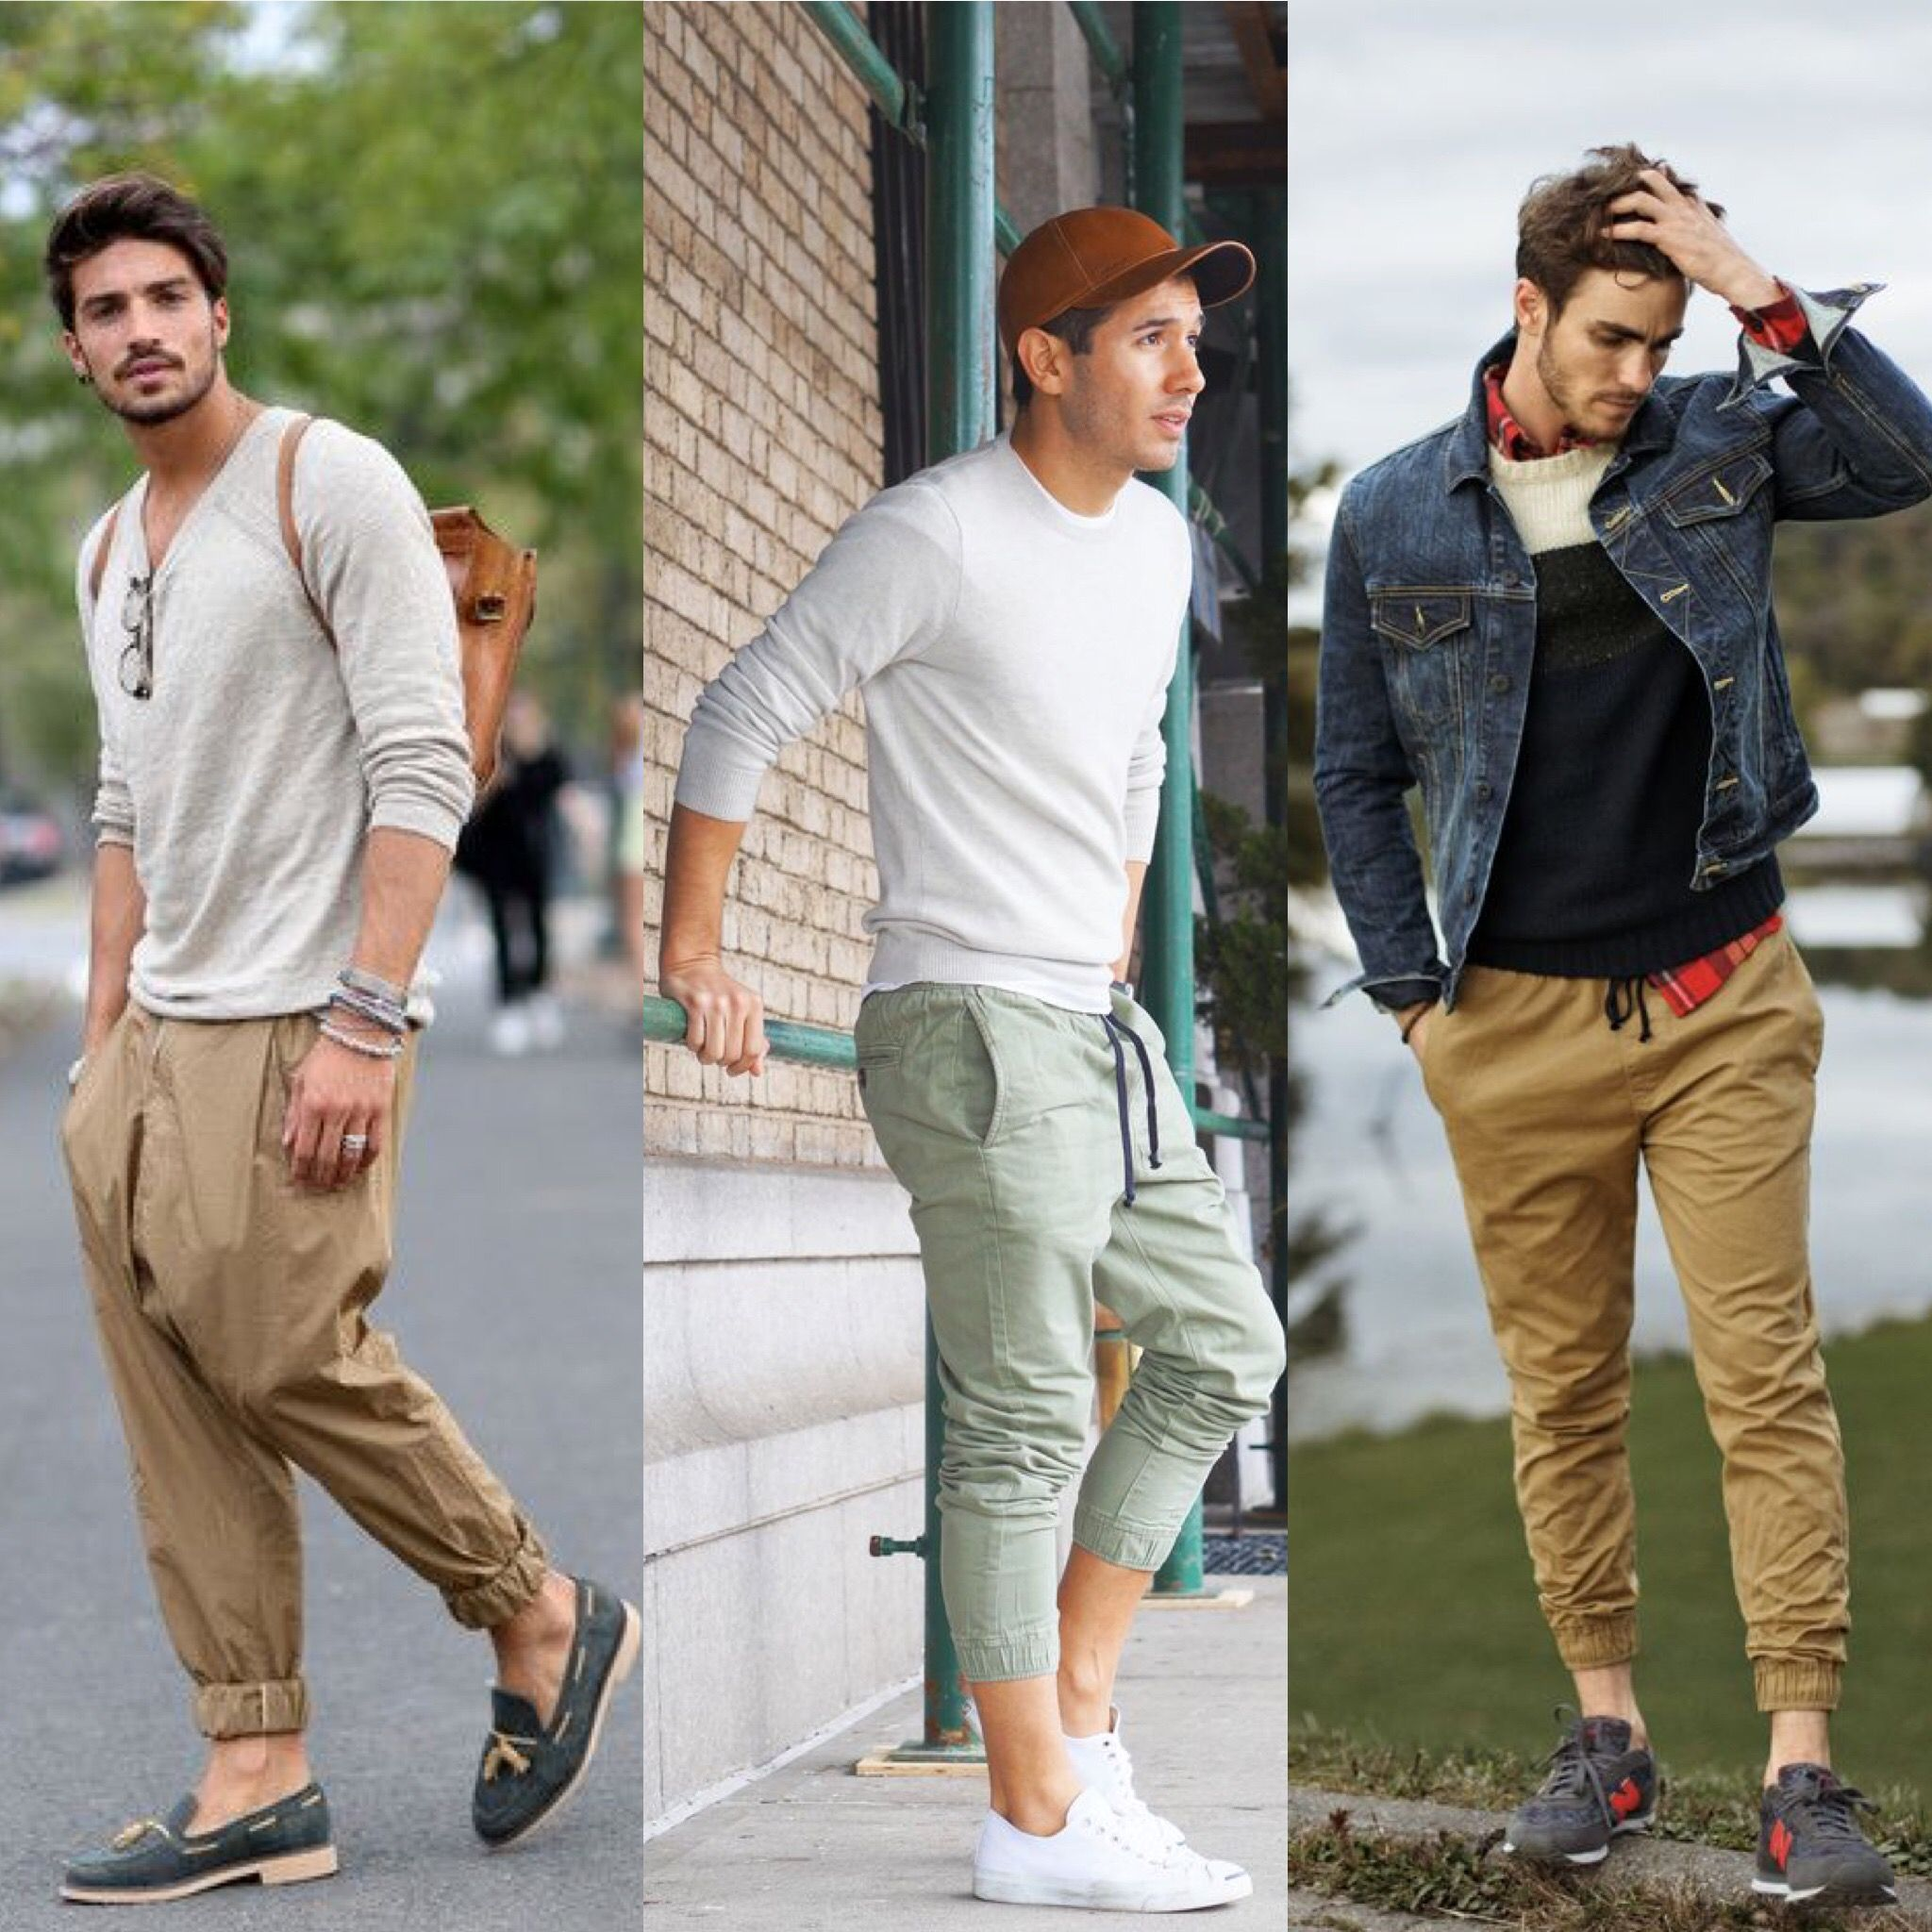 David Calle Libro Jogger Pants Men Fashion Men Mens Fashion Modern Mens